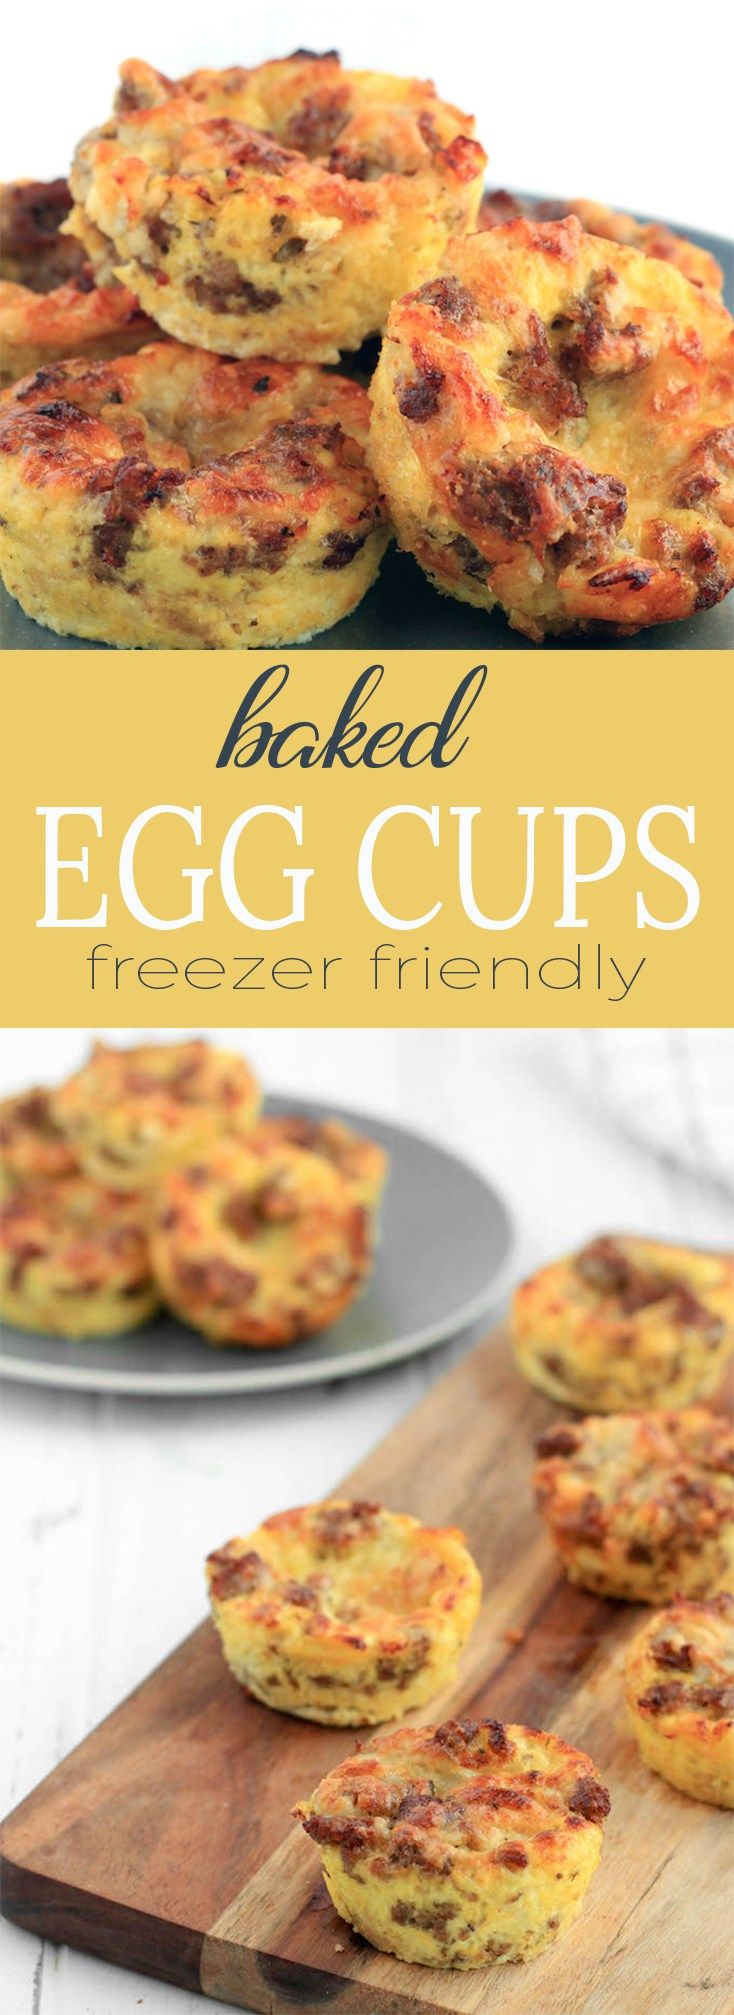 Freezer Friendly Baked Egg Cups Recipe Baked Egg Cups